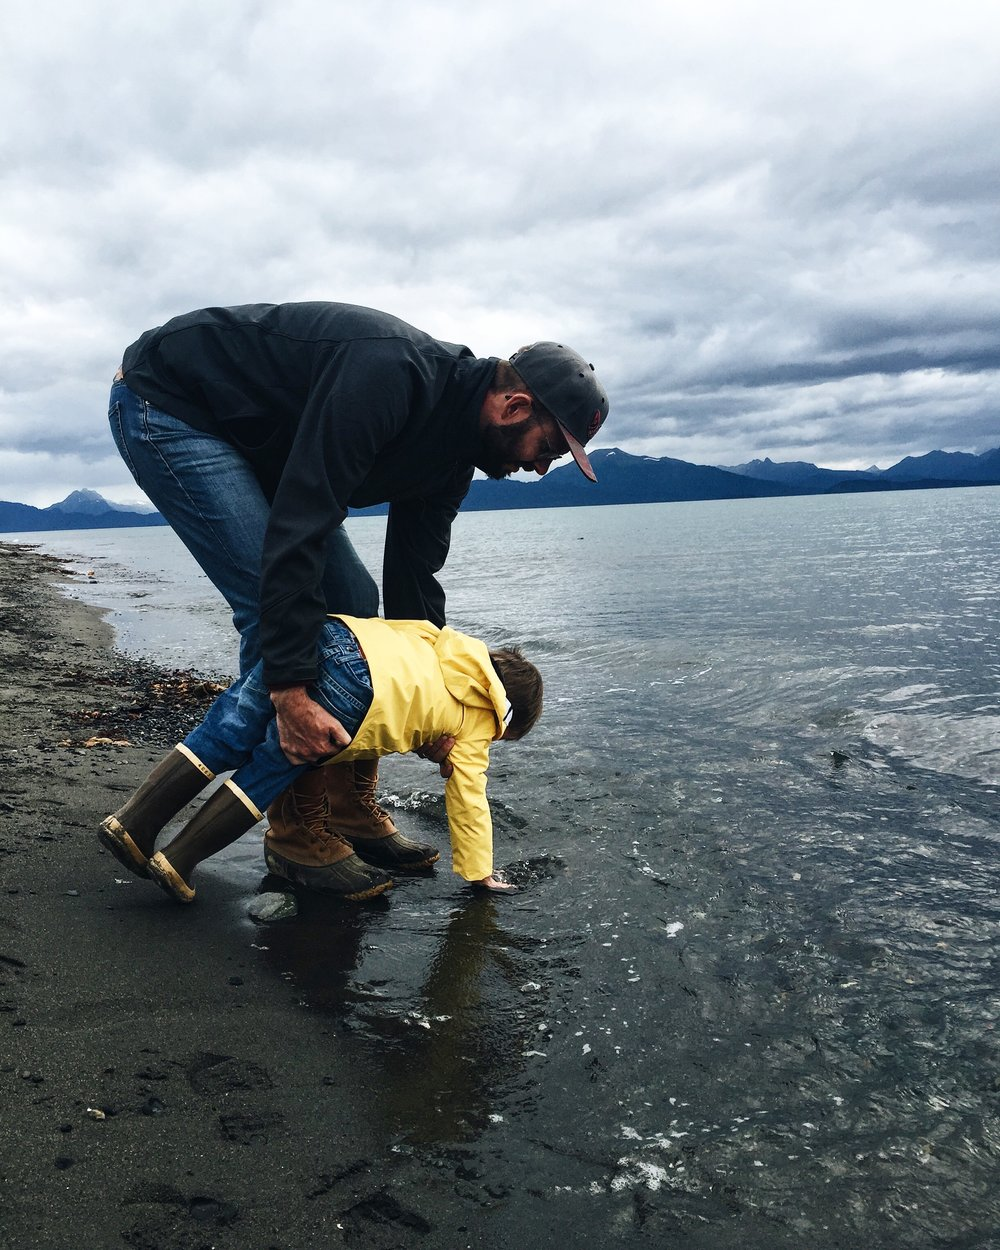 This was Abe's first time touching the ocean!  Jeremiah loves deep sea fishing, and this was the first time we've been able to make it up to AK since before Abraham was born, so this was a special  moment for sure.